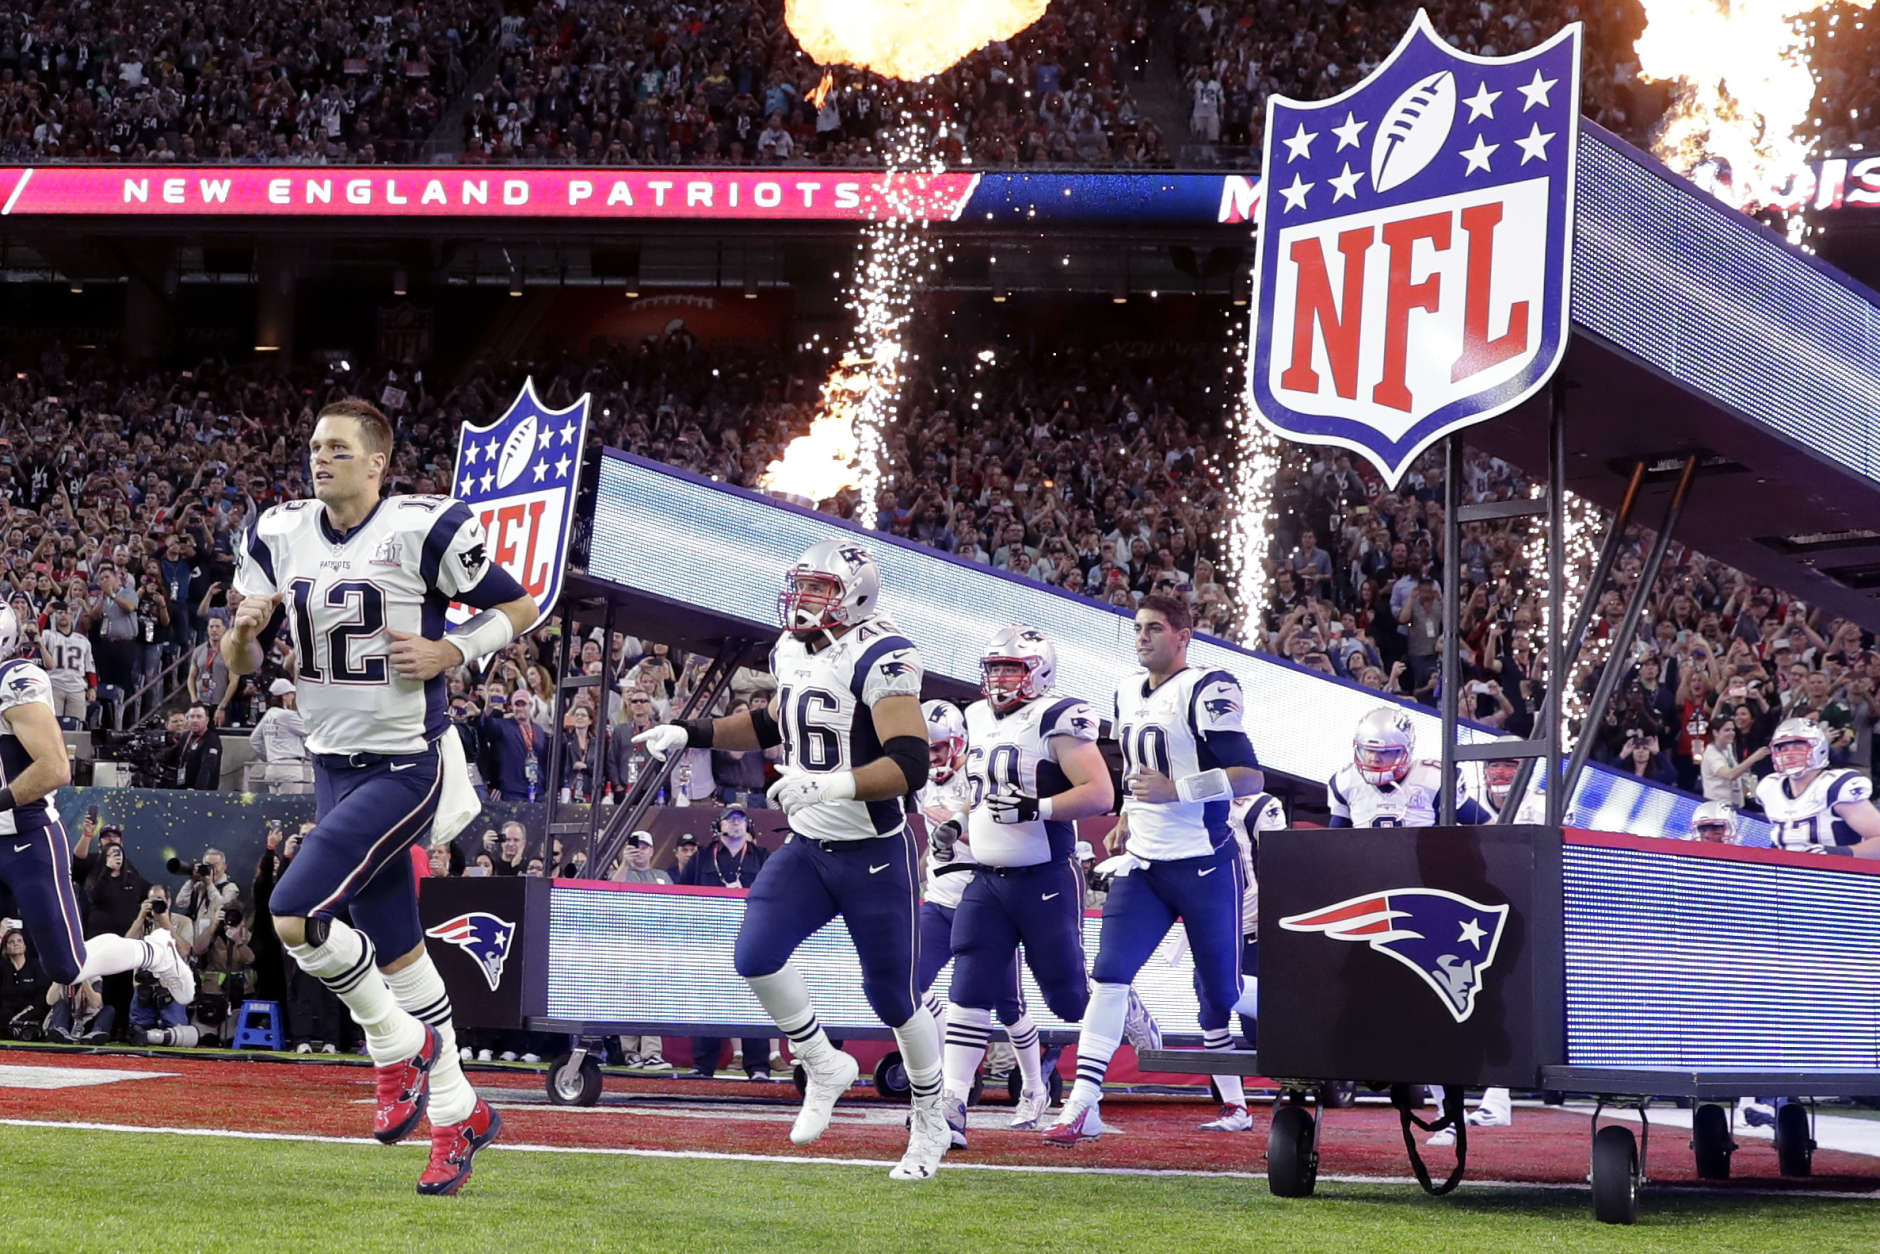 New England Patriots' Tom Brady runs on the field with teammates before the NFL Super Bowl 51 football game against the Atlanta Falcons Sunday, Feb. 5, 2017, in Houston. (AP Photo/Darron Cummings)